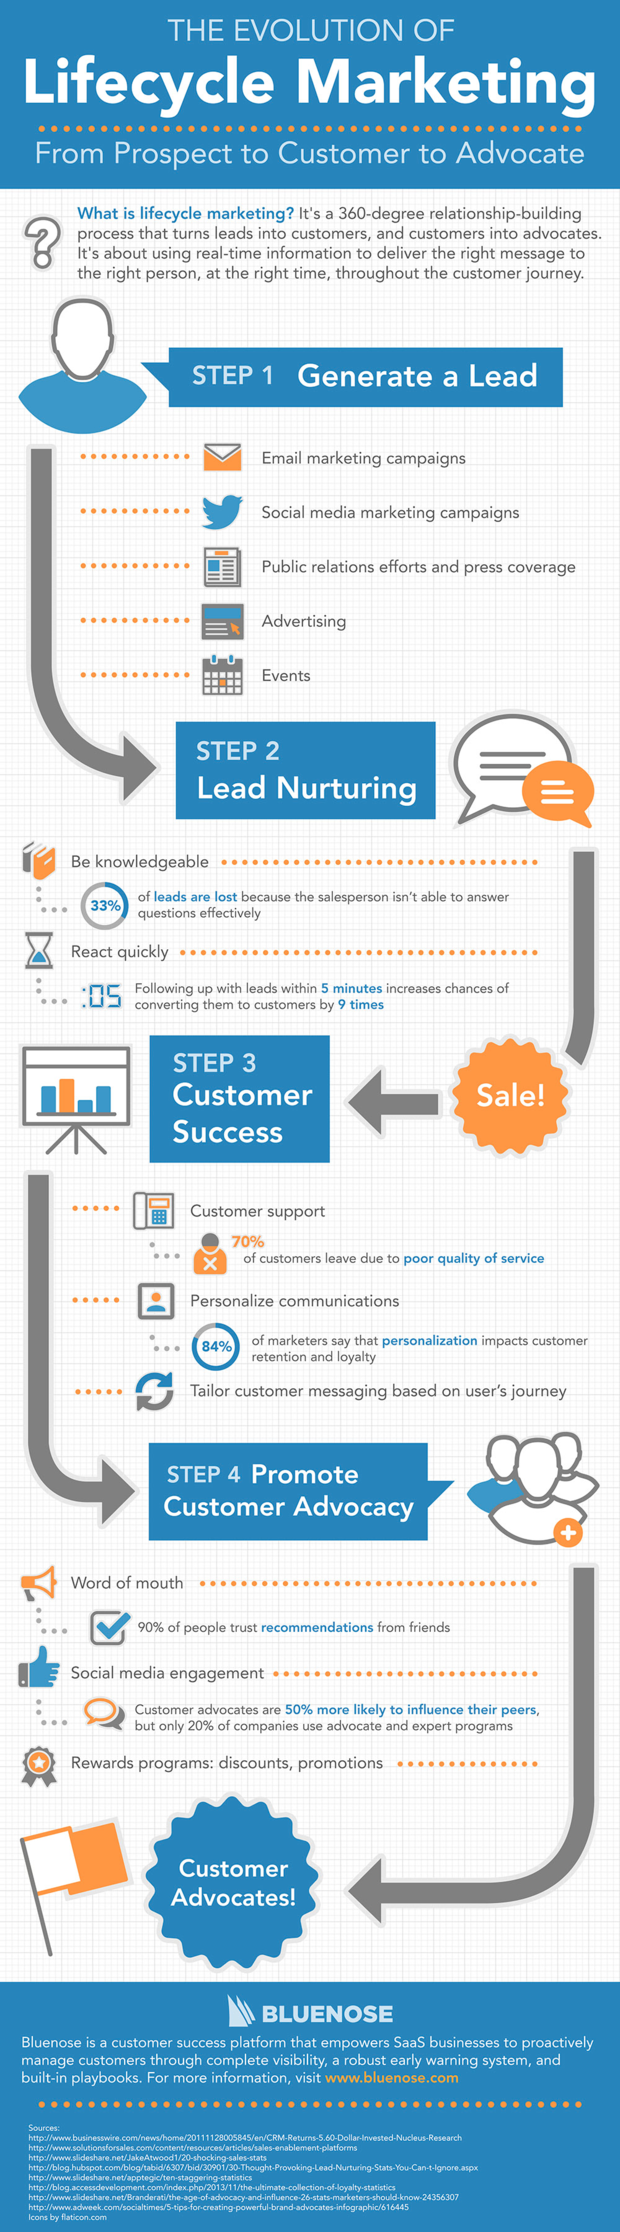 customer journey infographic